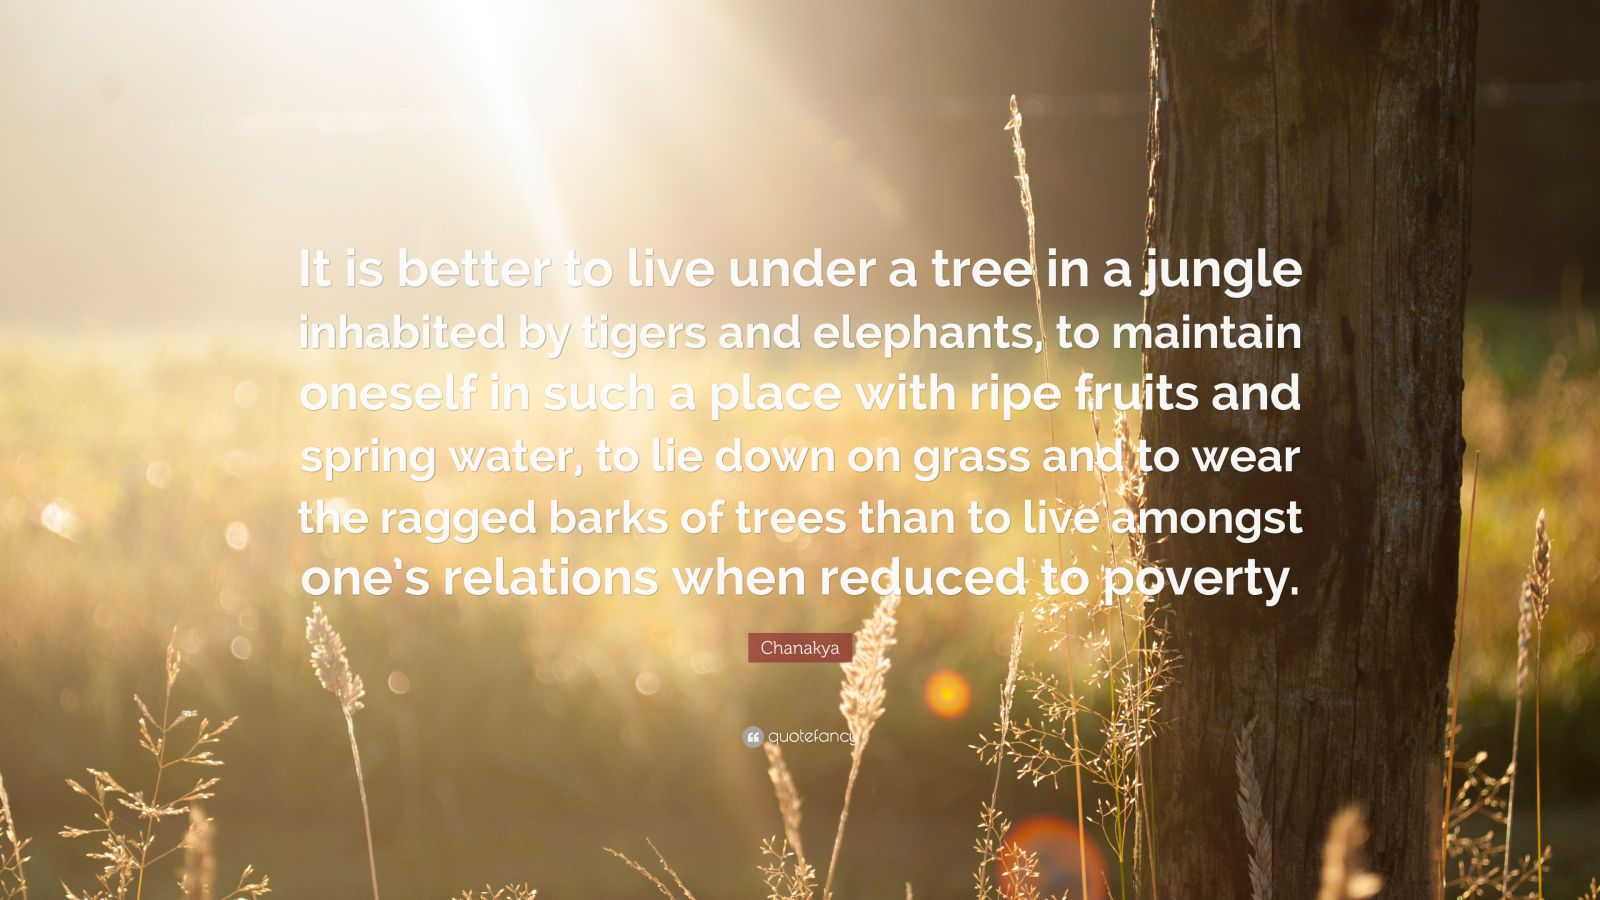 """Chanakya Quote: """"It is better to live under a tree in a jungle inhabited by tigers and elephants, to maintain oneself in such a place with ripe fruits and spring water, to lie down on grass and to wear the ragged barks of trees than to live amongst one's relations when reduced to poverty."""""""